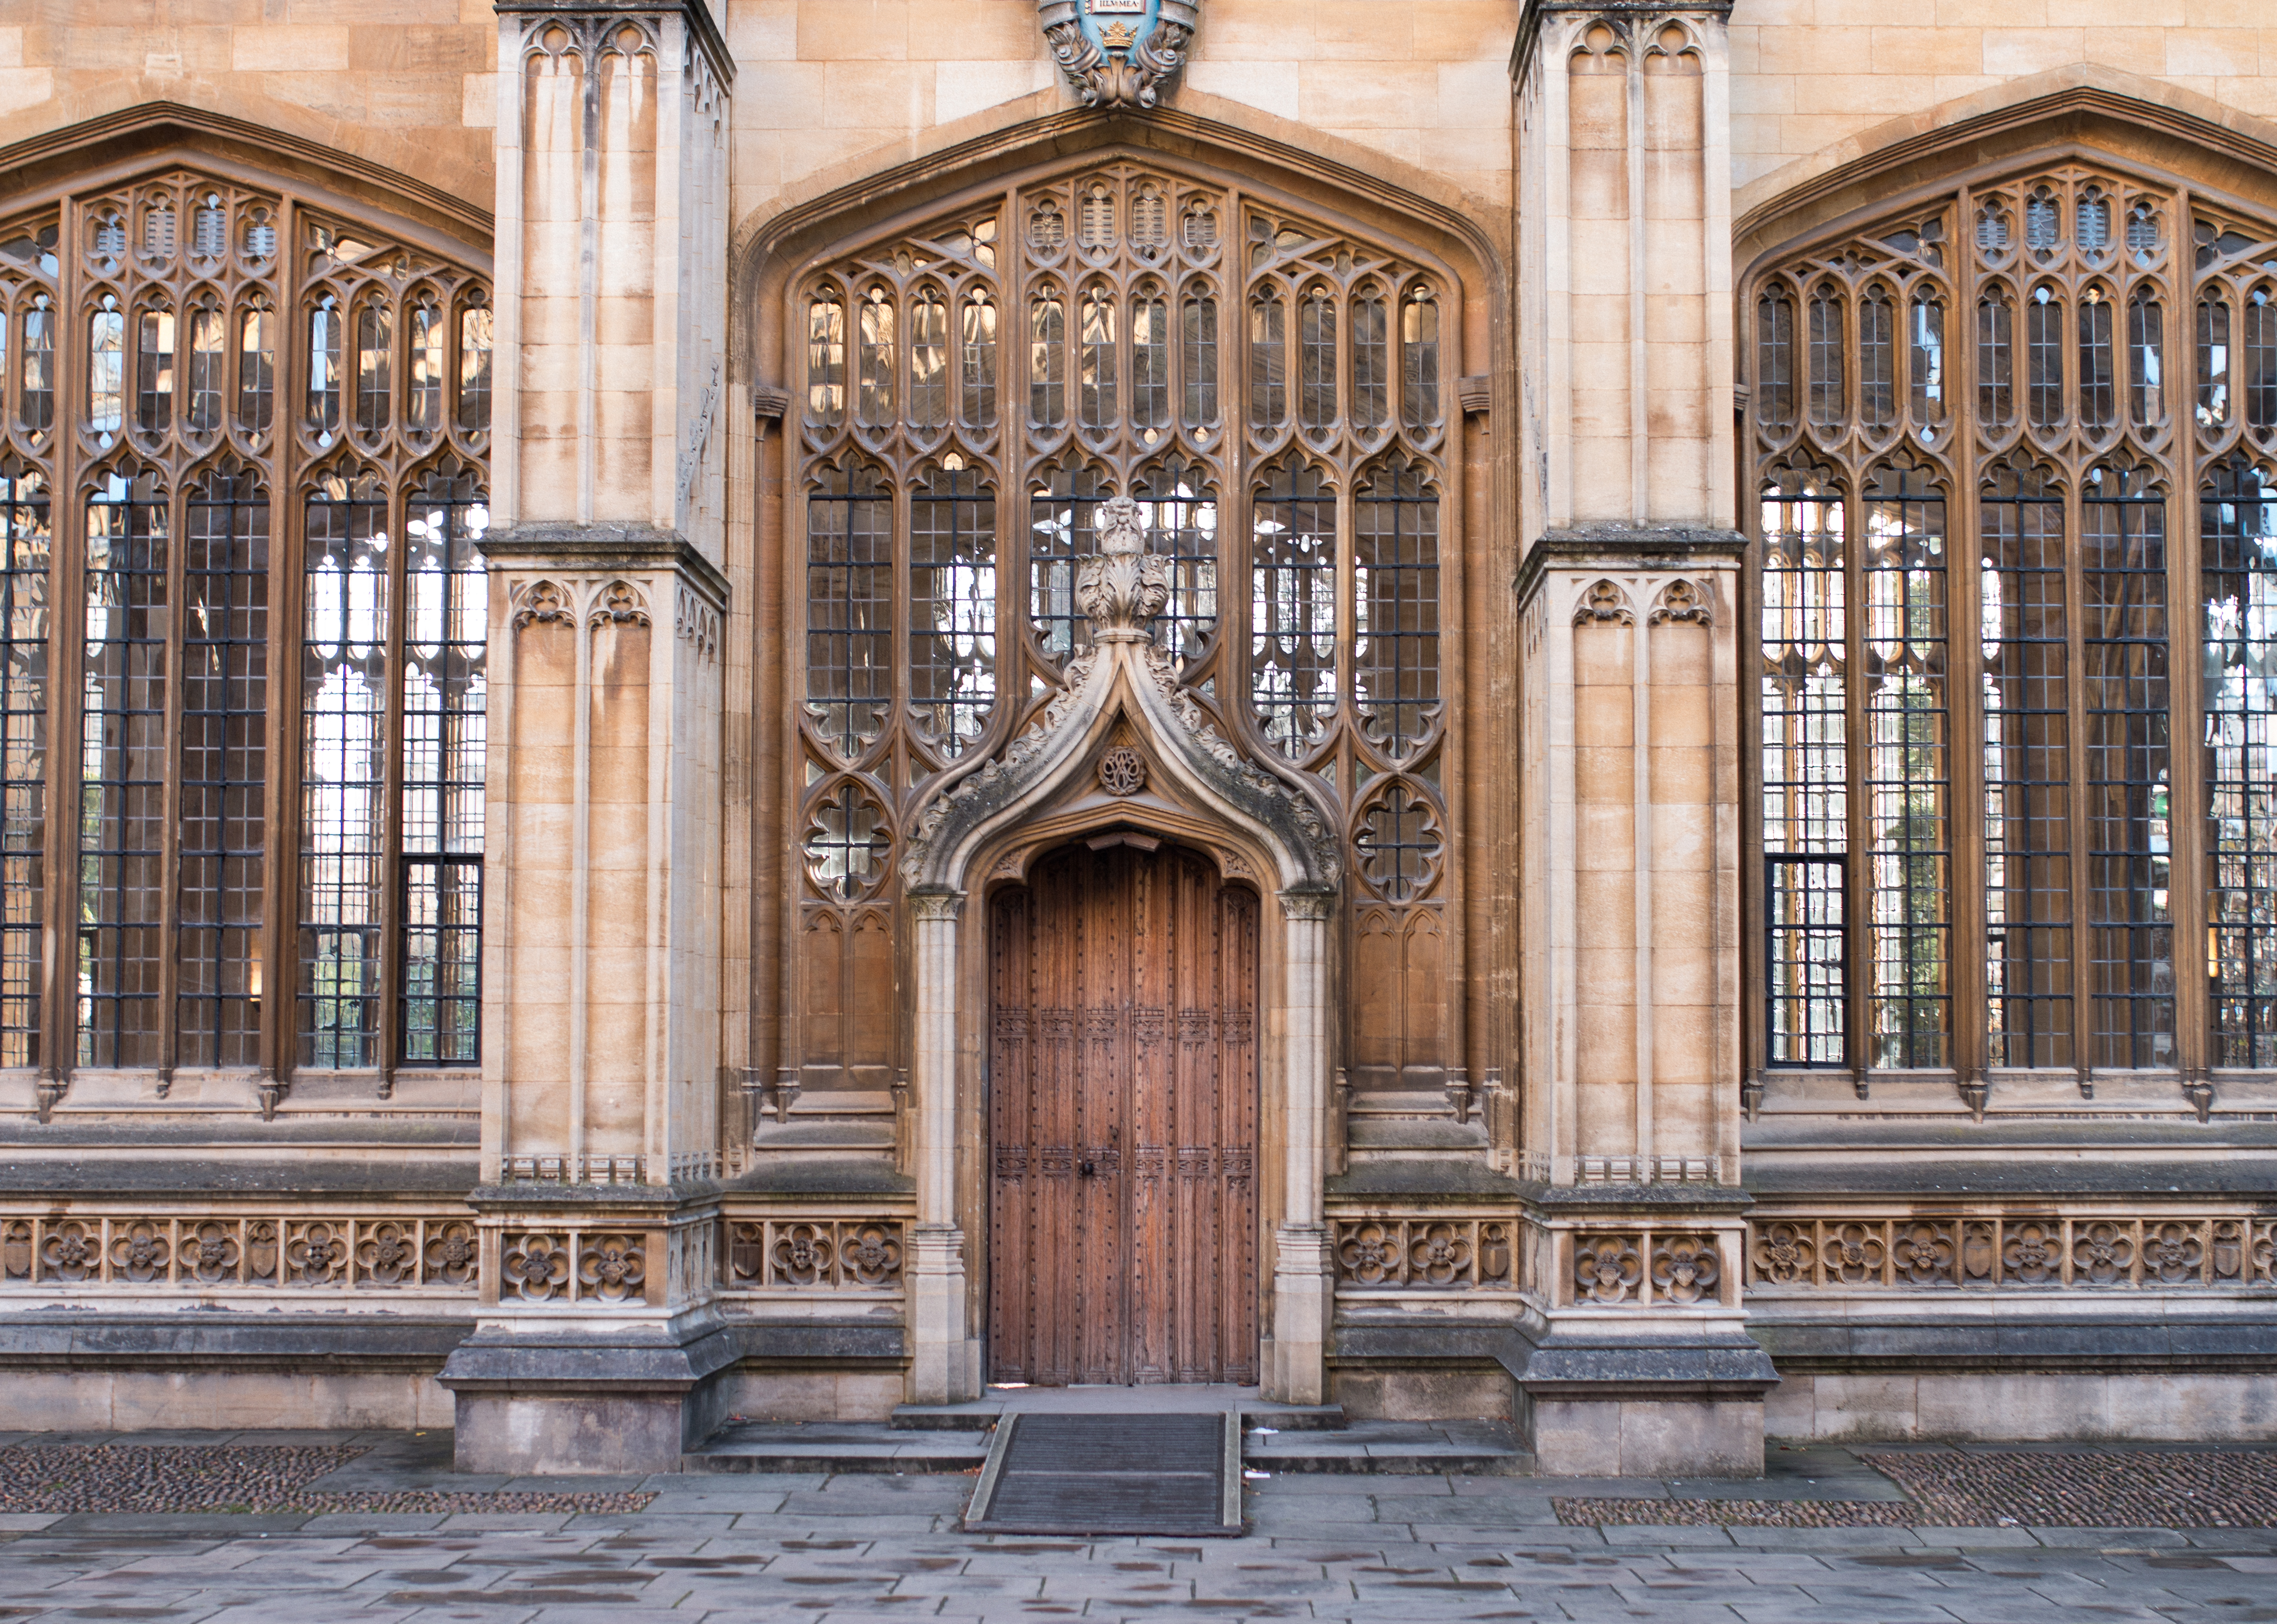 the Bodleian Library